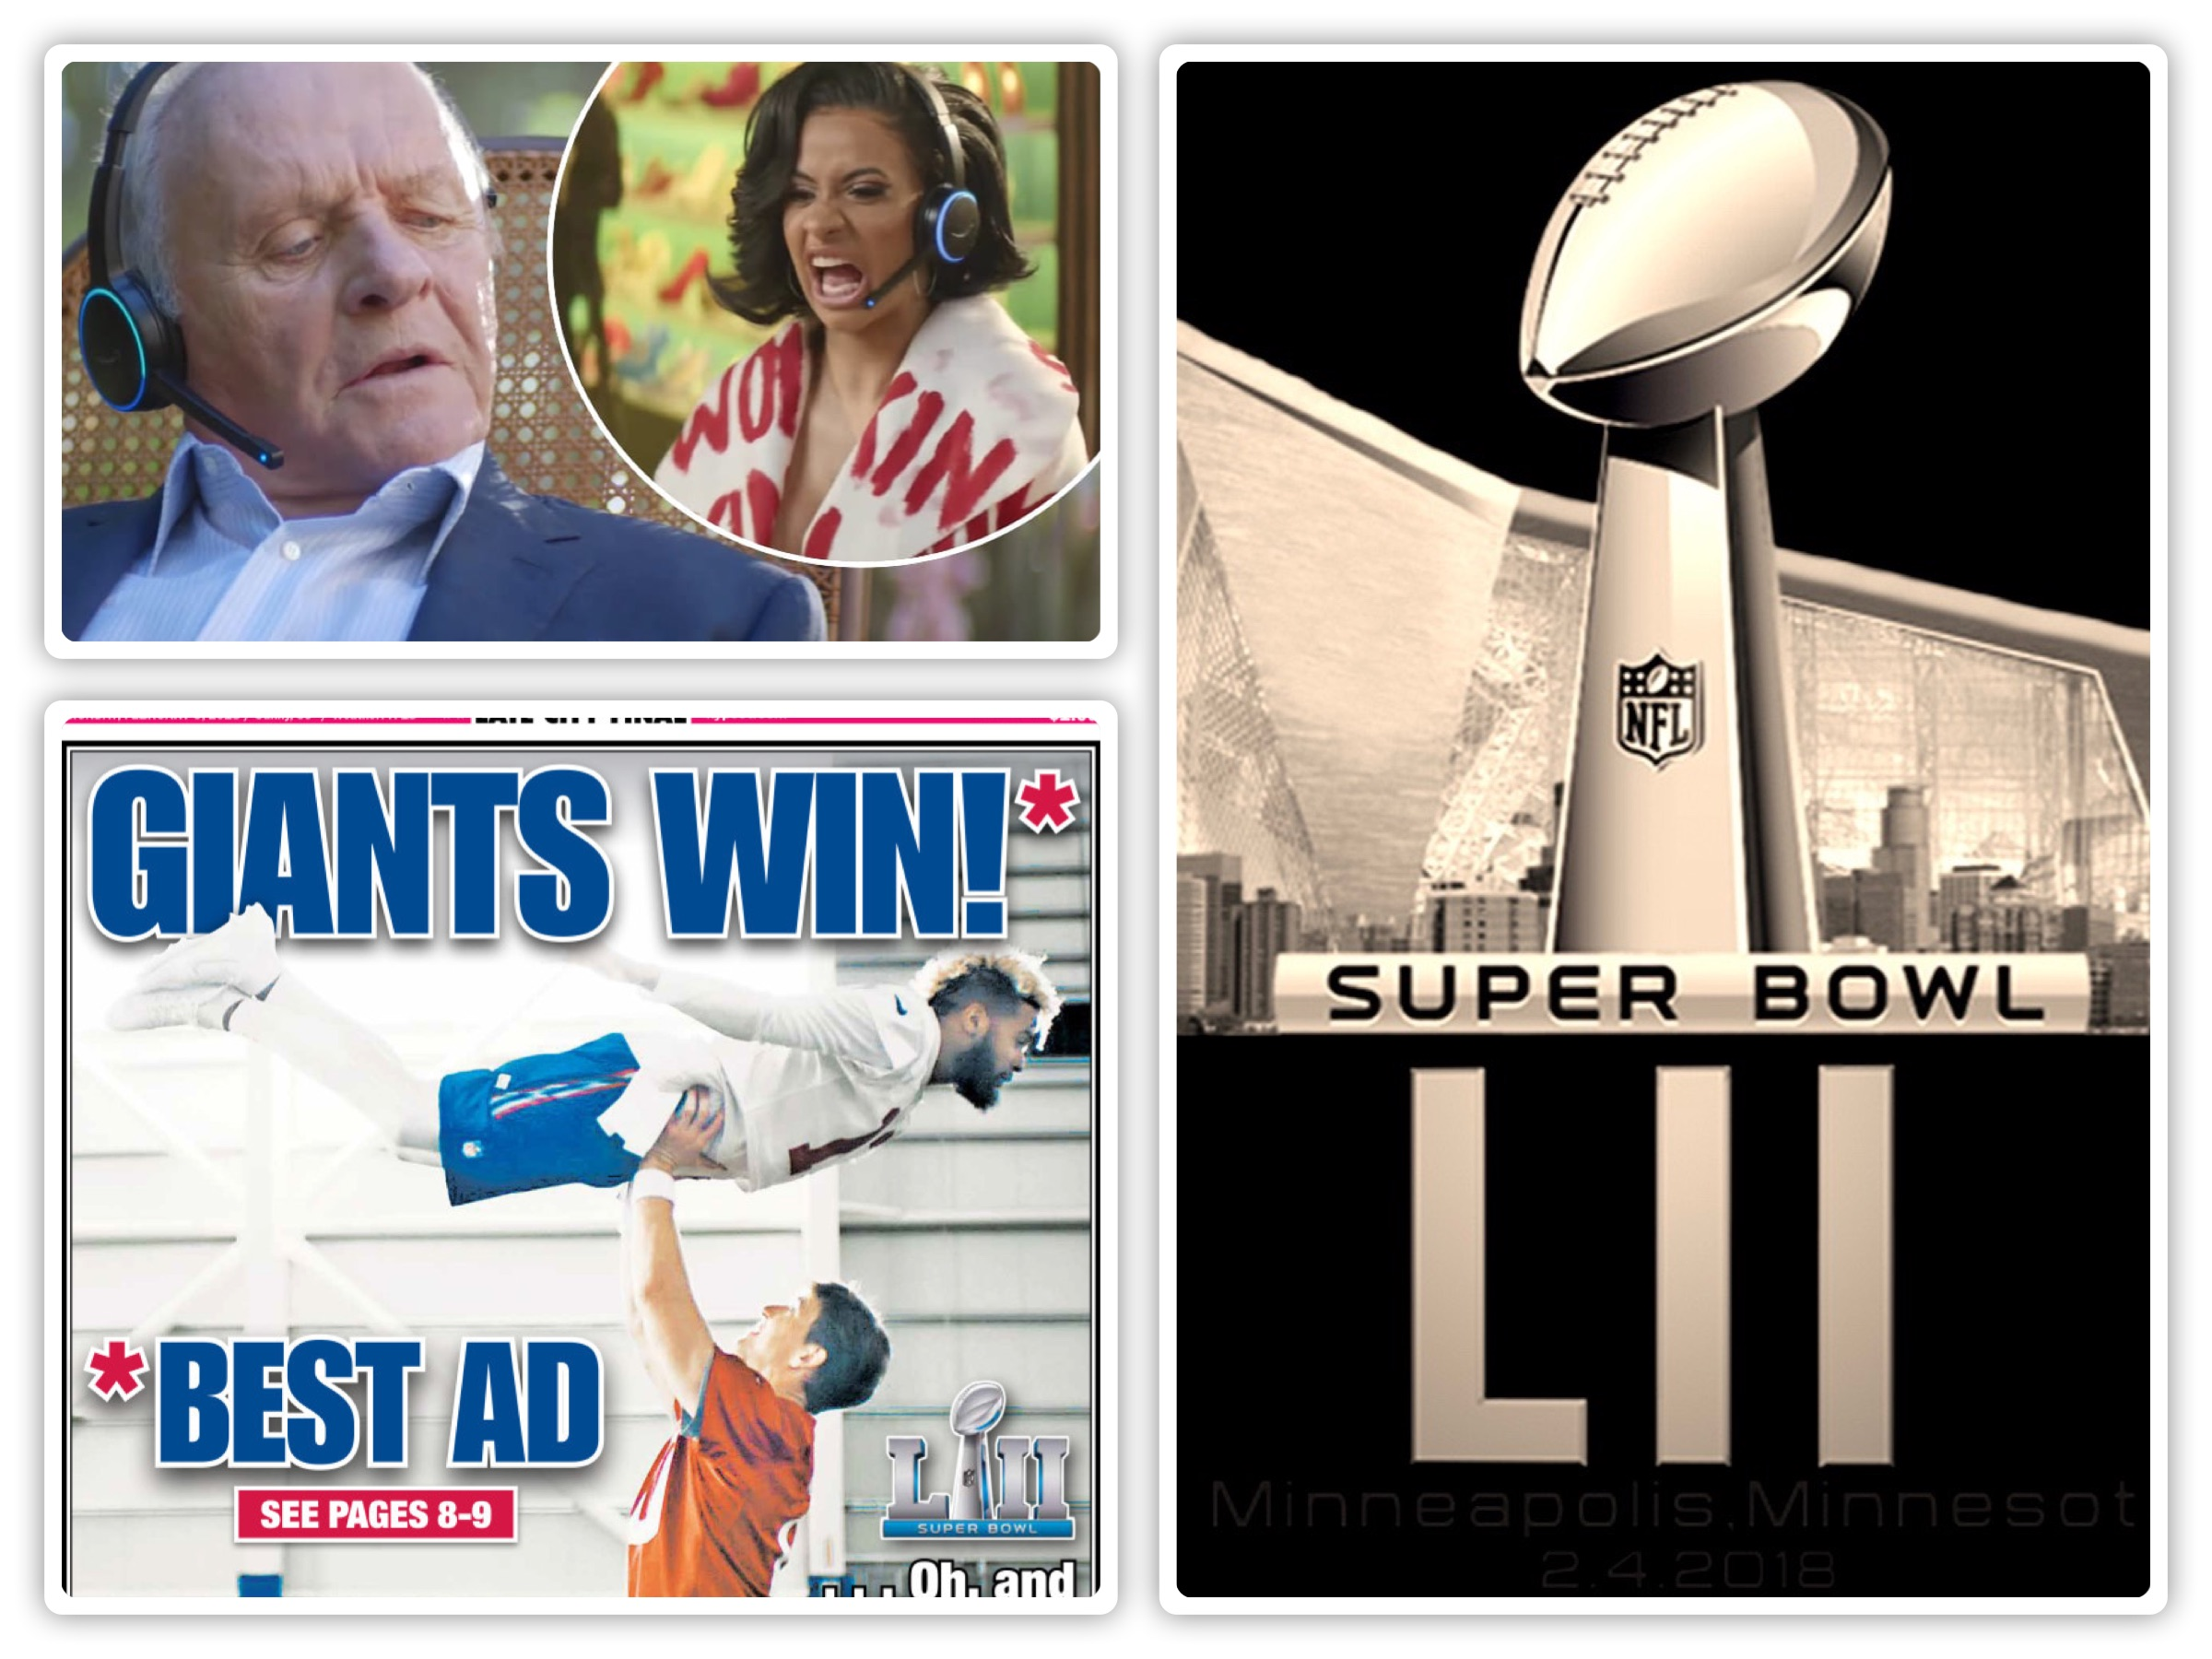 superbowl advertising The first $1 million dollar 30-second super bowl commercial aired in 1995 now, that same 30-second commercial is well over $5 million dollars per spot, quite different from a spot in 1967 when a 30-second commercial cost $42,000 1982 saw the highest rated super bowl when san francisco beat cincinnati 26-21.